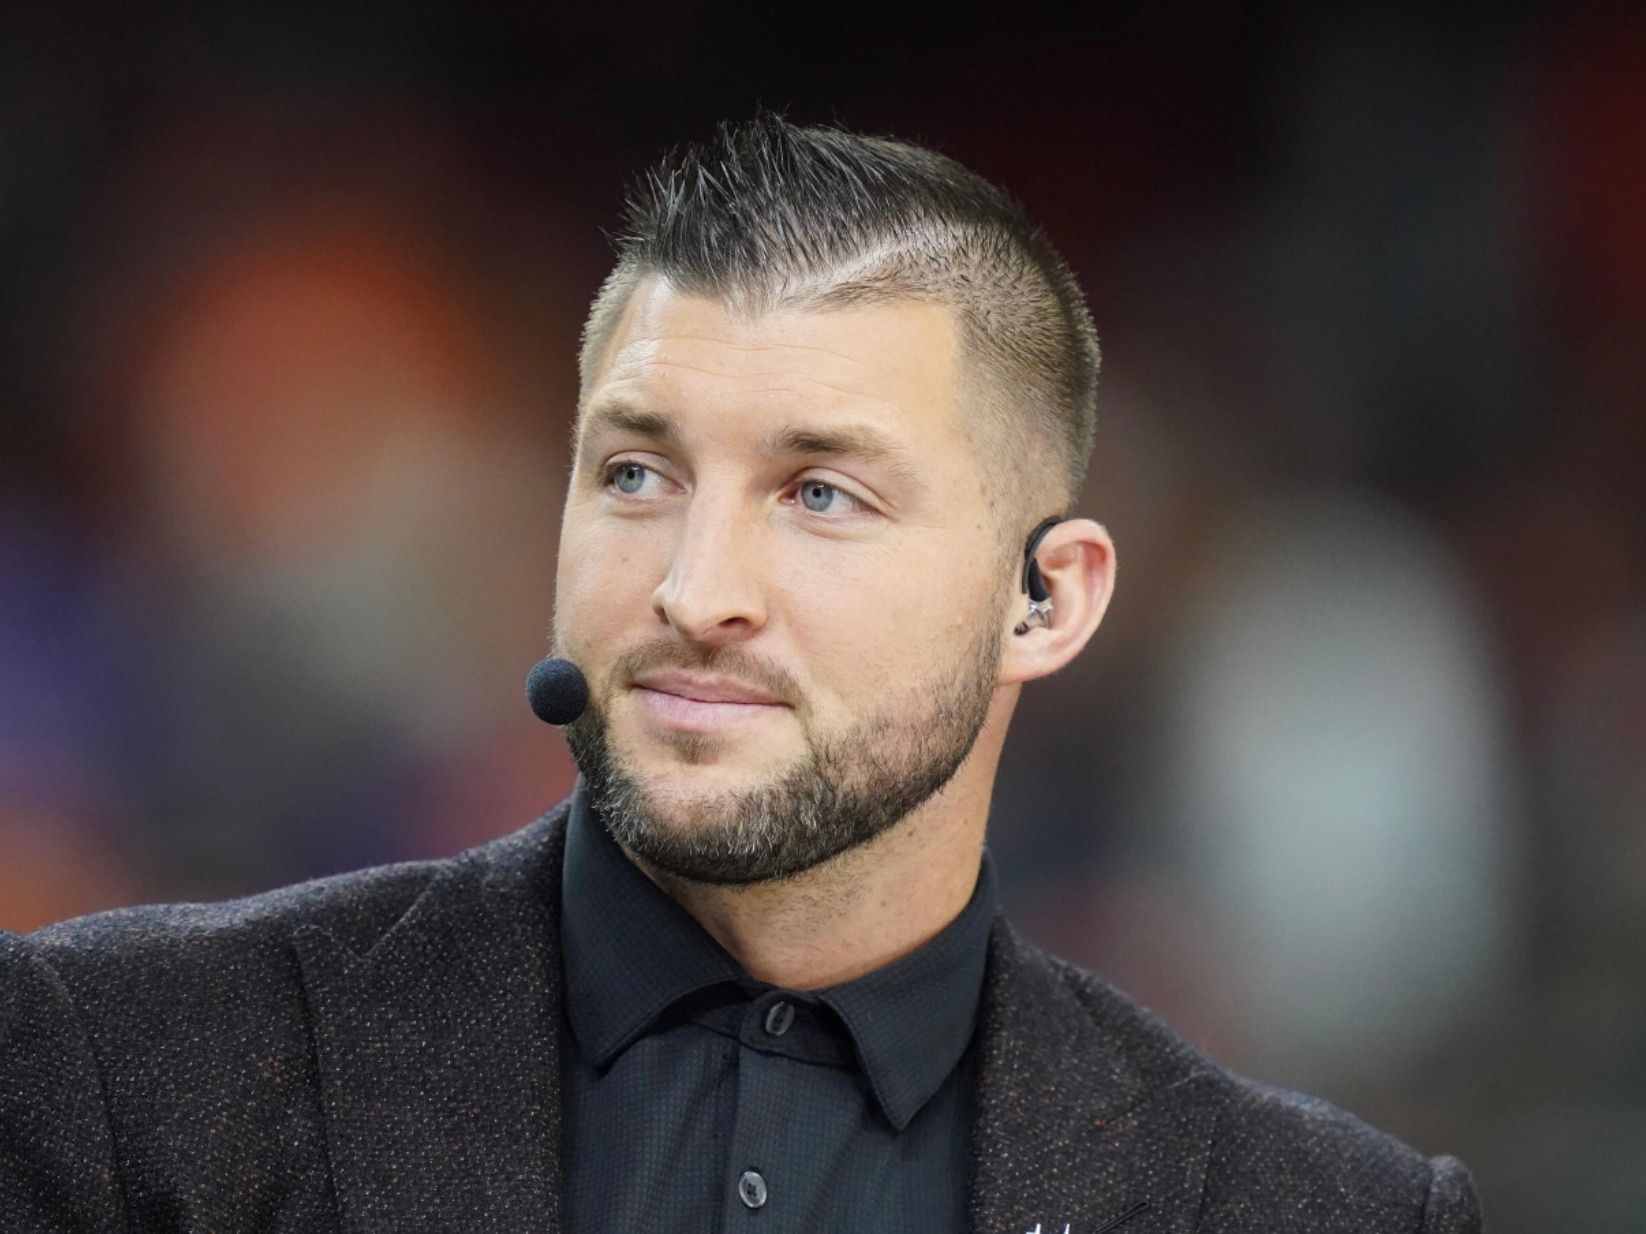 WATCH: Tim Tebow looking absolutely huge in inspirational workout videos